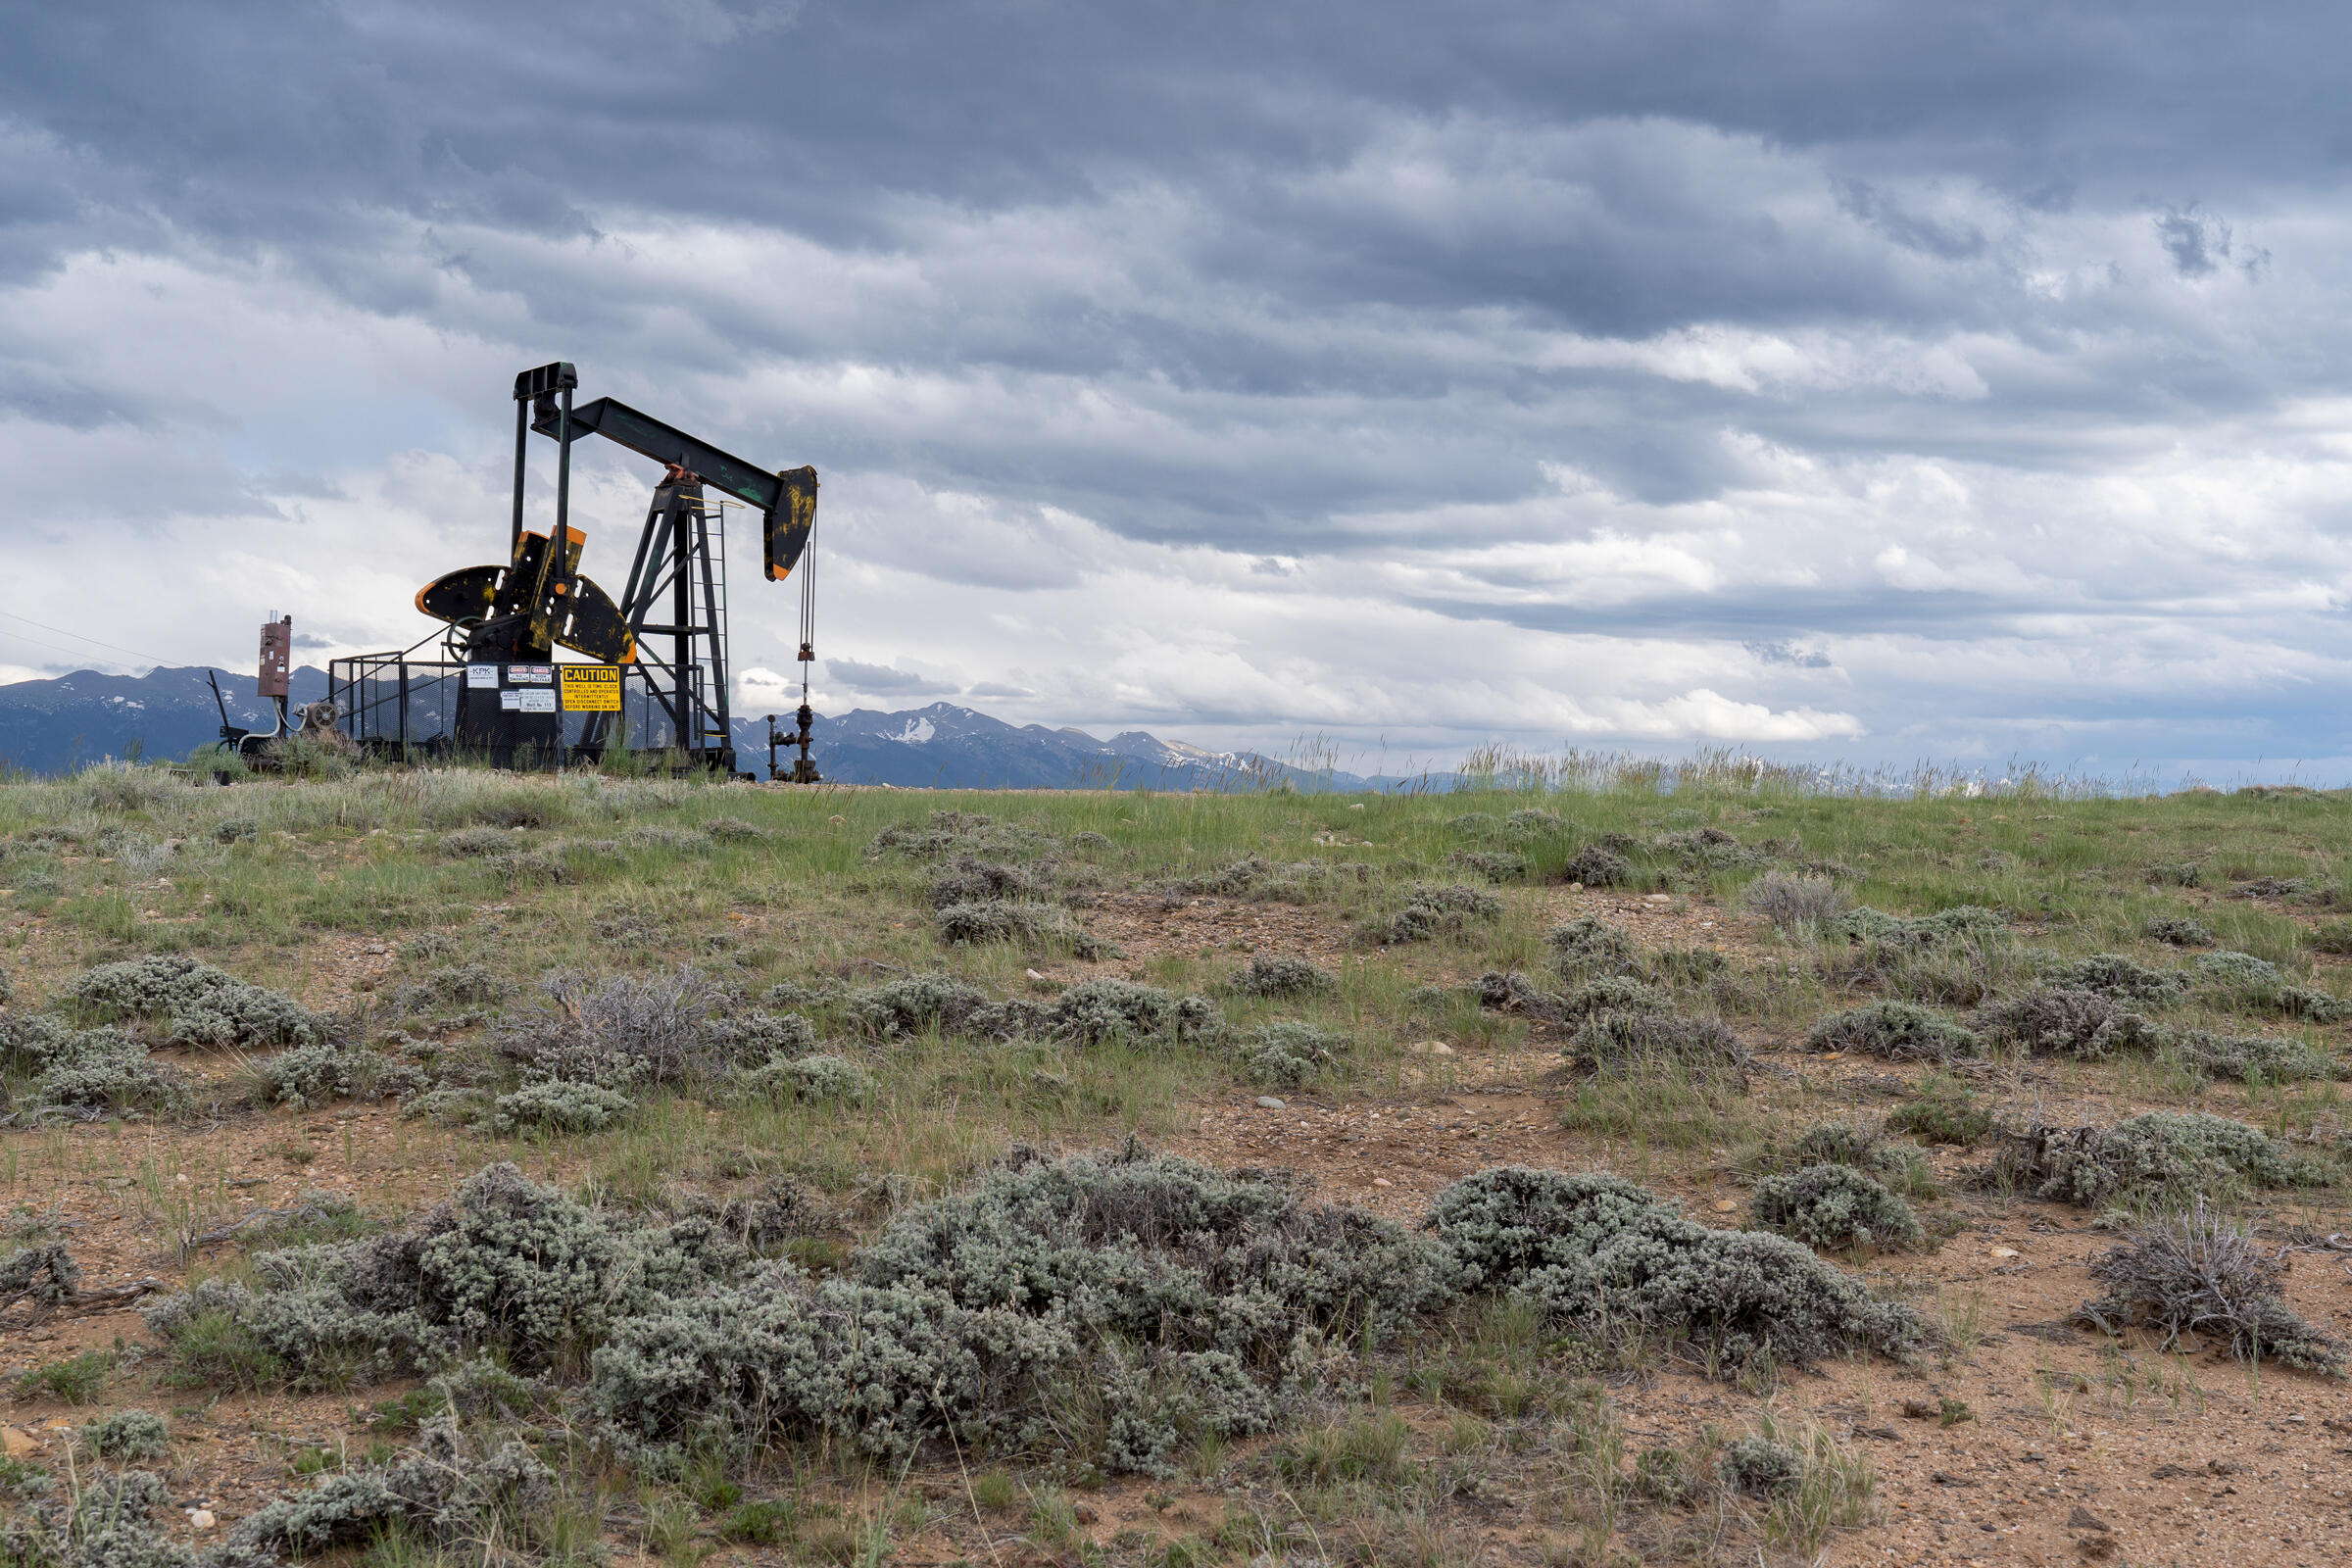 Courts have voided leases and otherwise impeded the administration's efforts to lift restrictions on energy development within Greater Sage-Grouse habitat. Evan Barrientos/Audubon